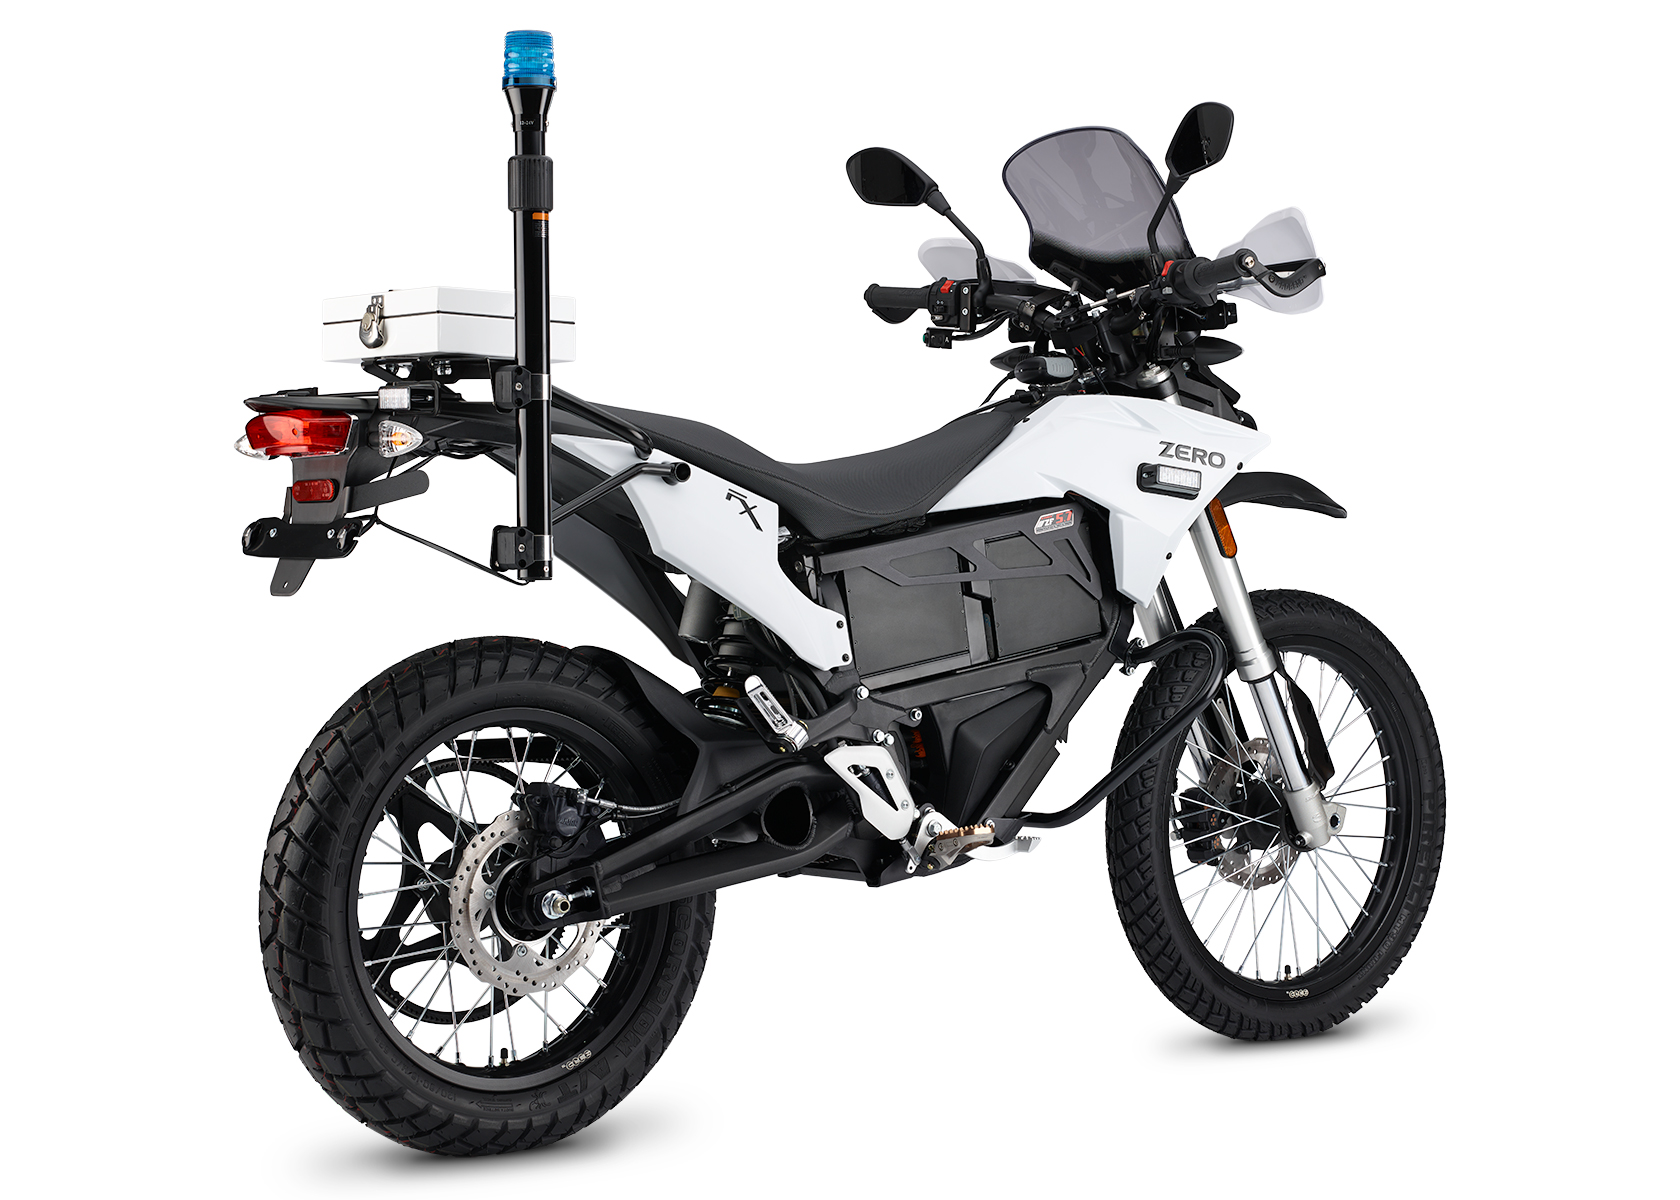 2015 Zero FXP Electric Motorcycle: Left Angle, White Background